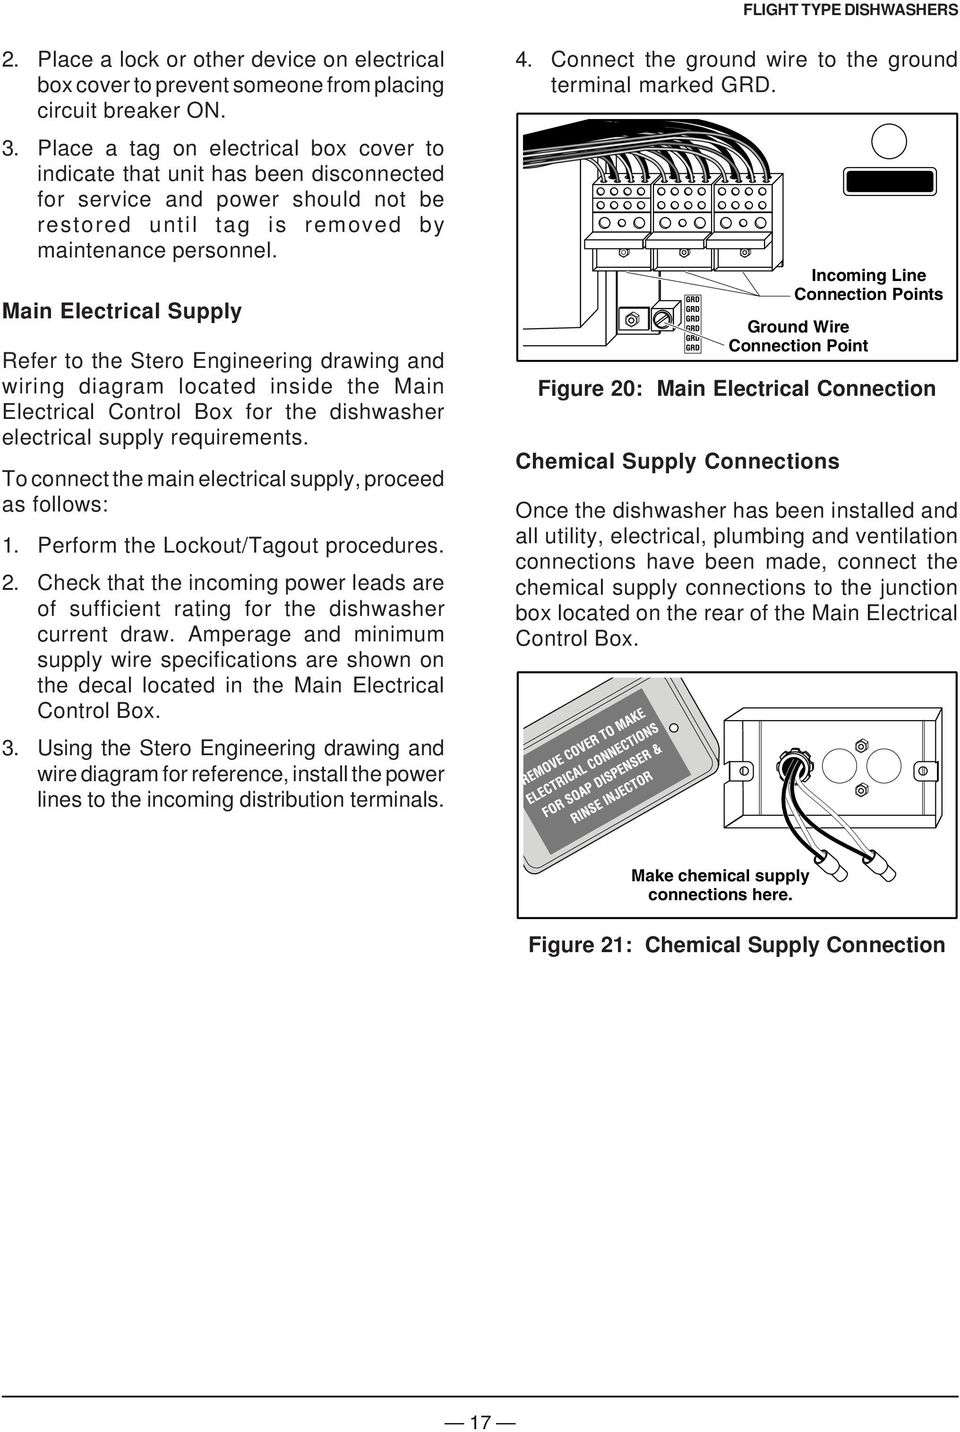 Main Electrical Supply Refer to the Stero Engineering drawing and wiring diagram located inside the Main Electrical Control Box for the dishwasher electrical supply requirements.